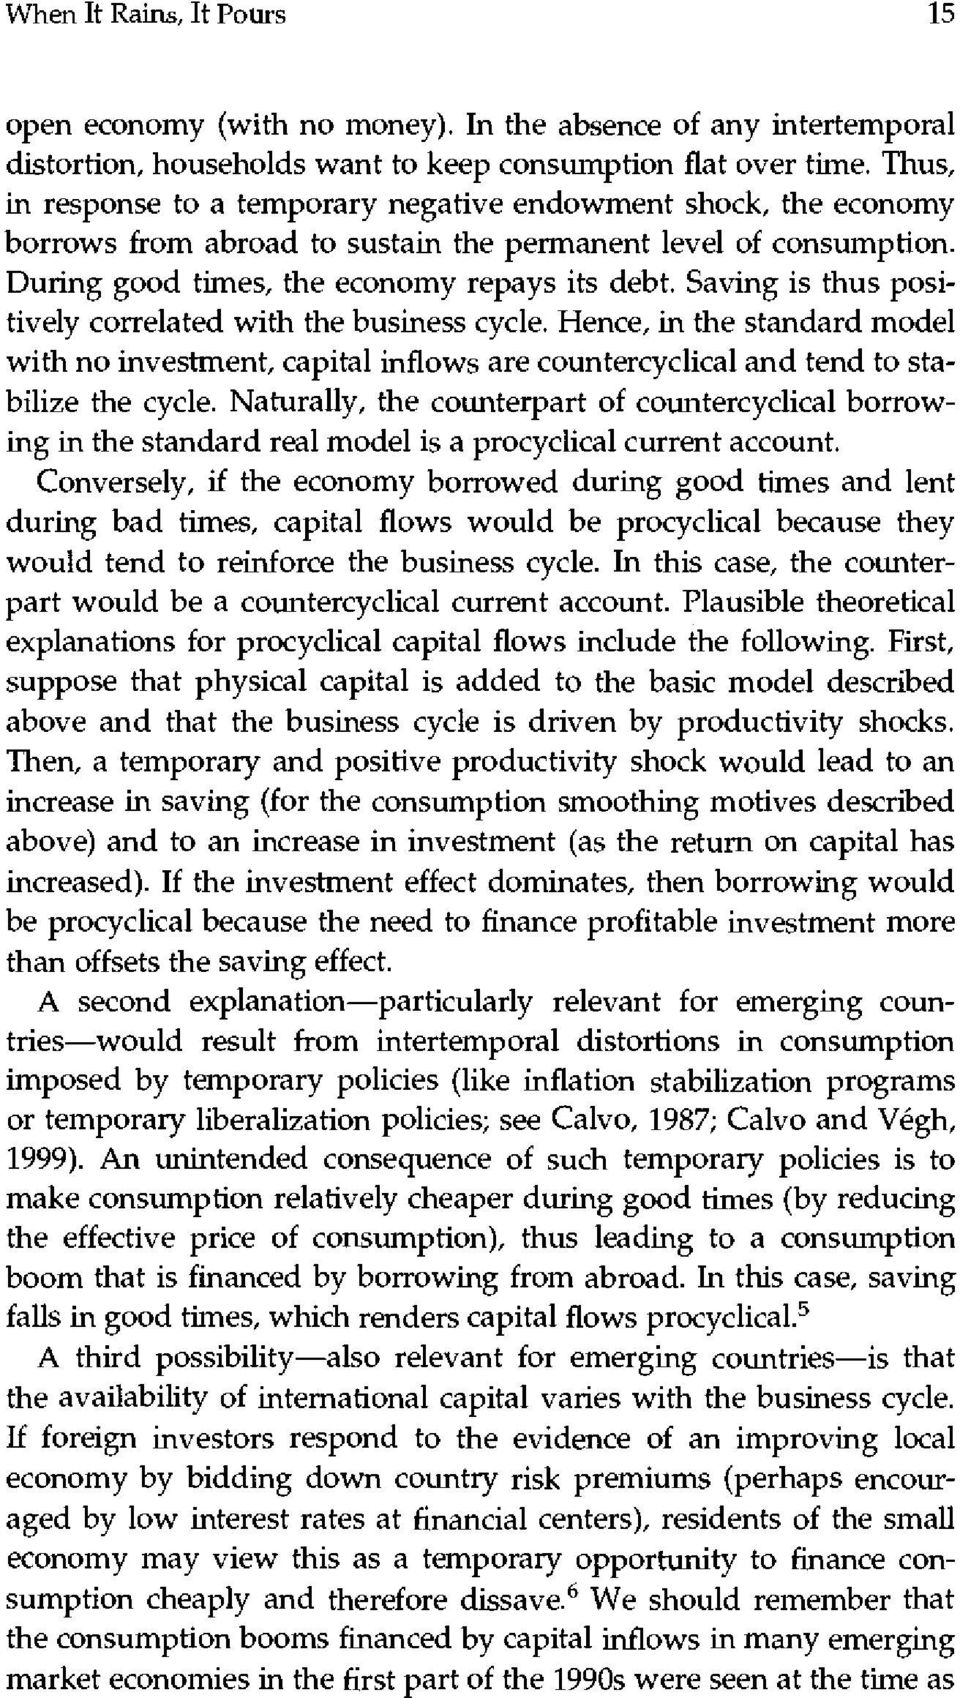 Saving is thus positively correlated with the business cycle. Hence, in the standard model with no investment, capital inflows are countercyclical and tend to stabilize the cycle.